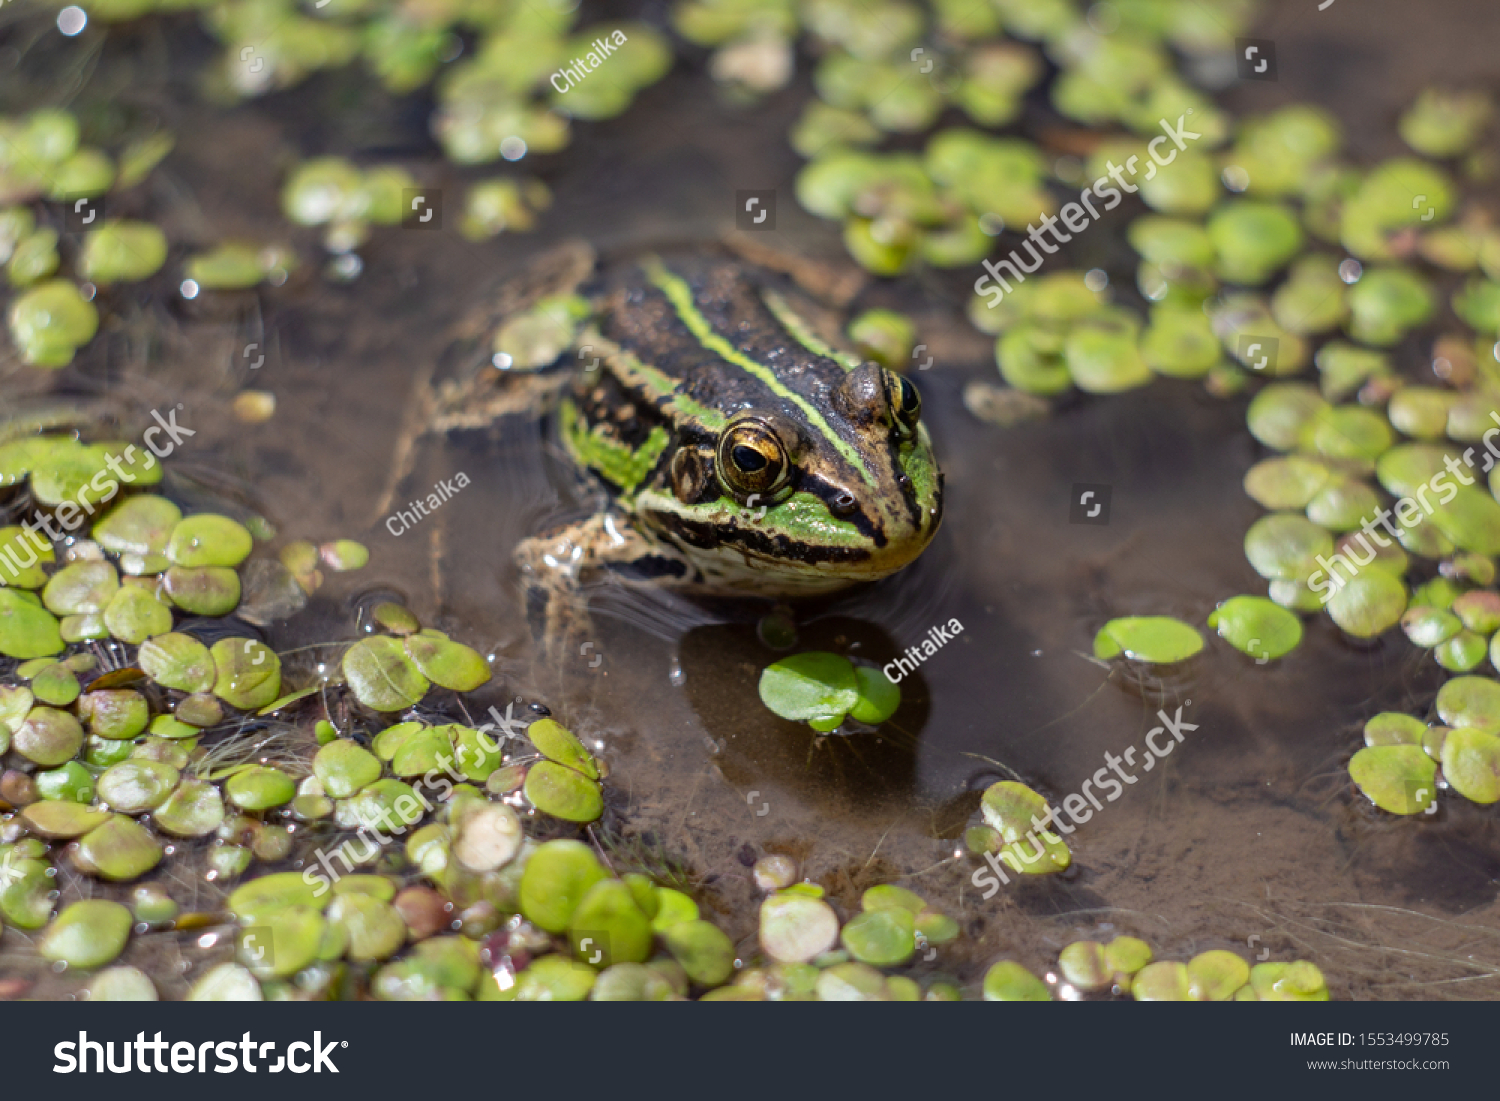 Amphibian in water with duckweed. Green frog in the pond. (Rana esculenta) Macro photo. looking at the camera #1553499785